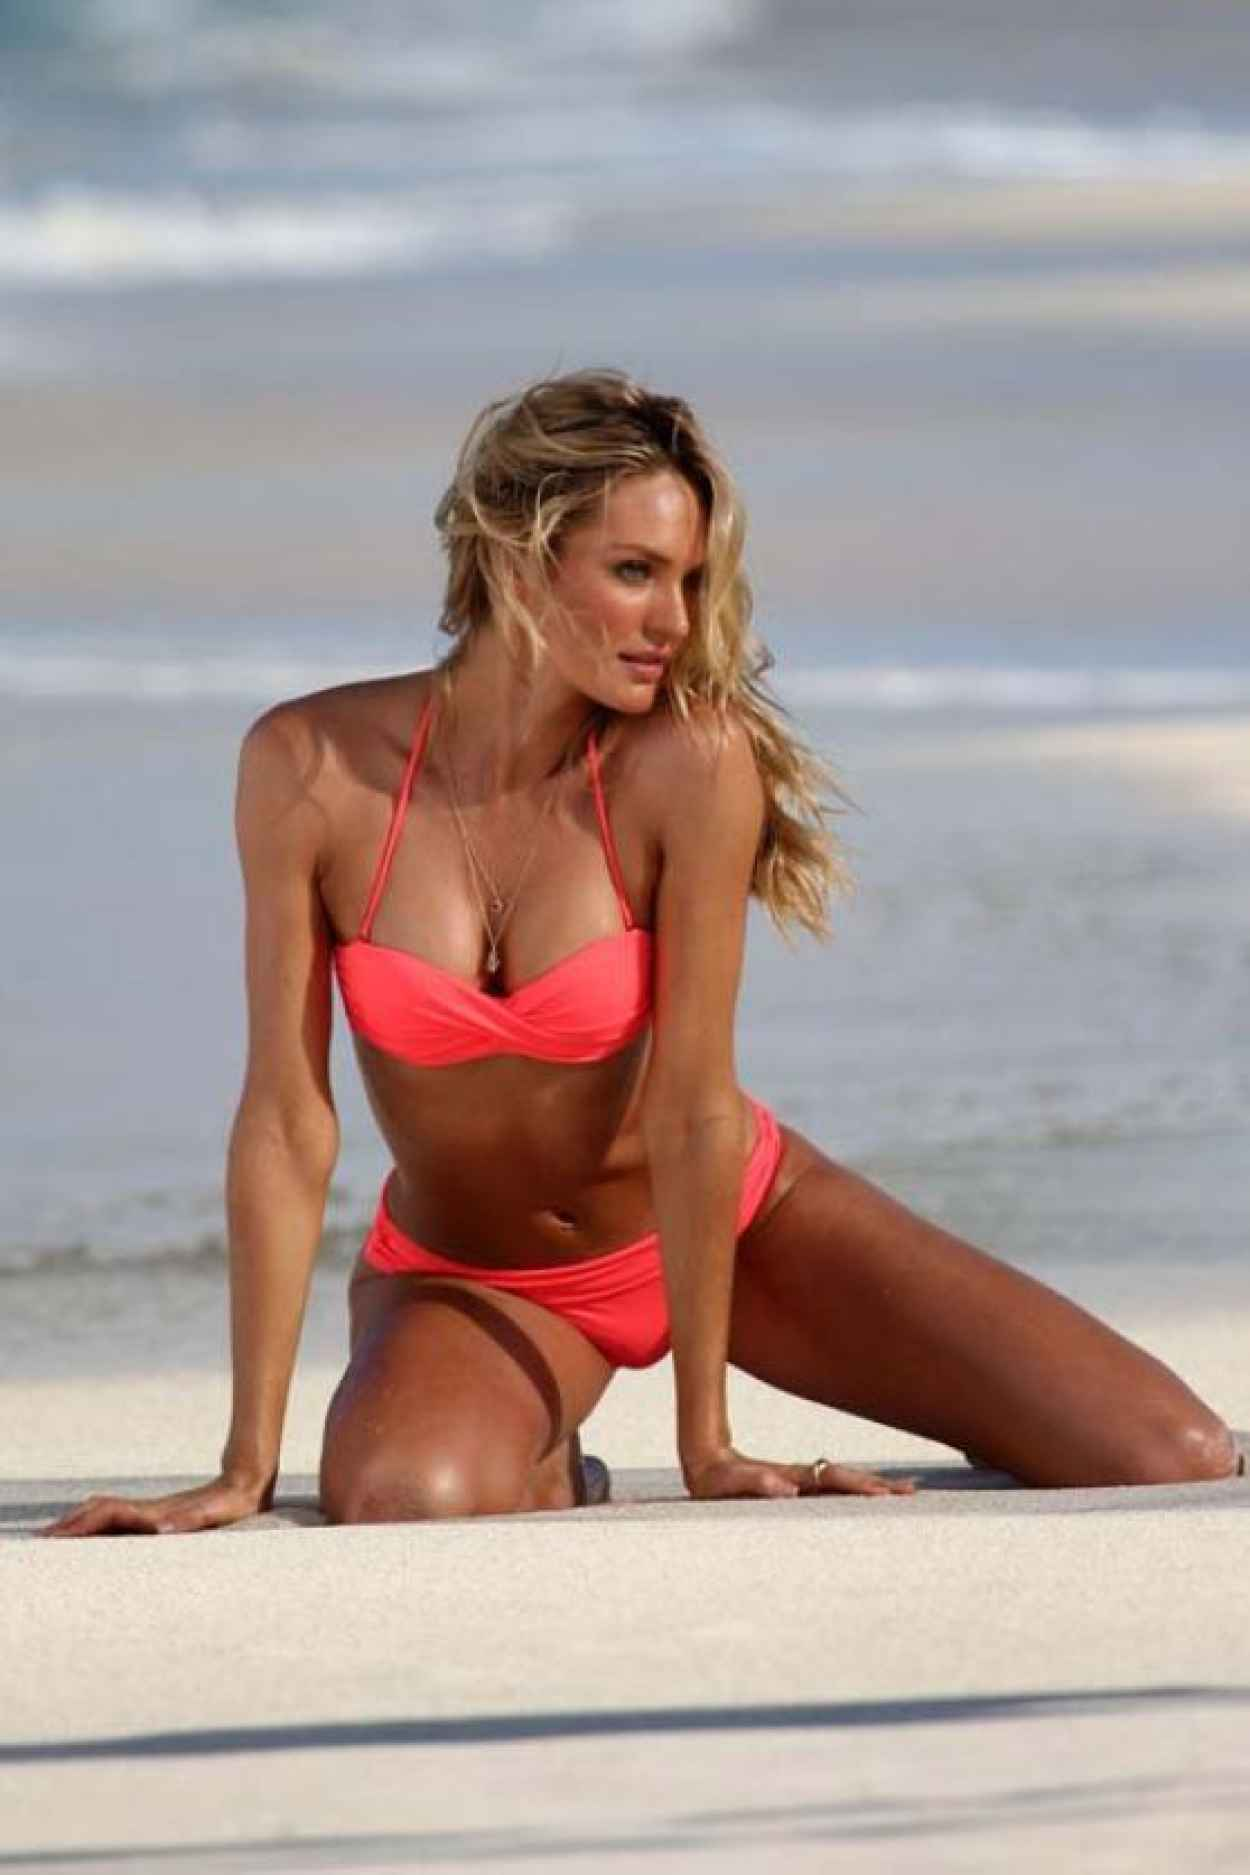 Candice Swanepoel Bikini Photoshoot - Victoria Secret Swim Shoot in St. Barts - Part II-1